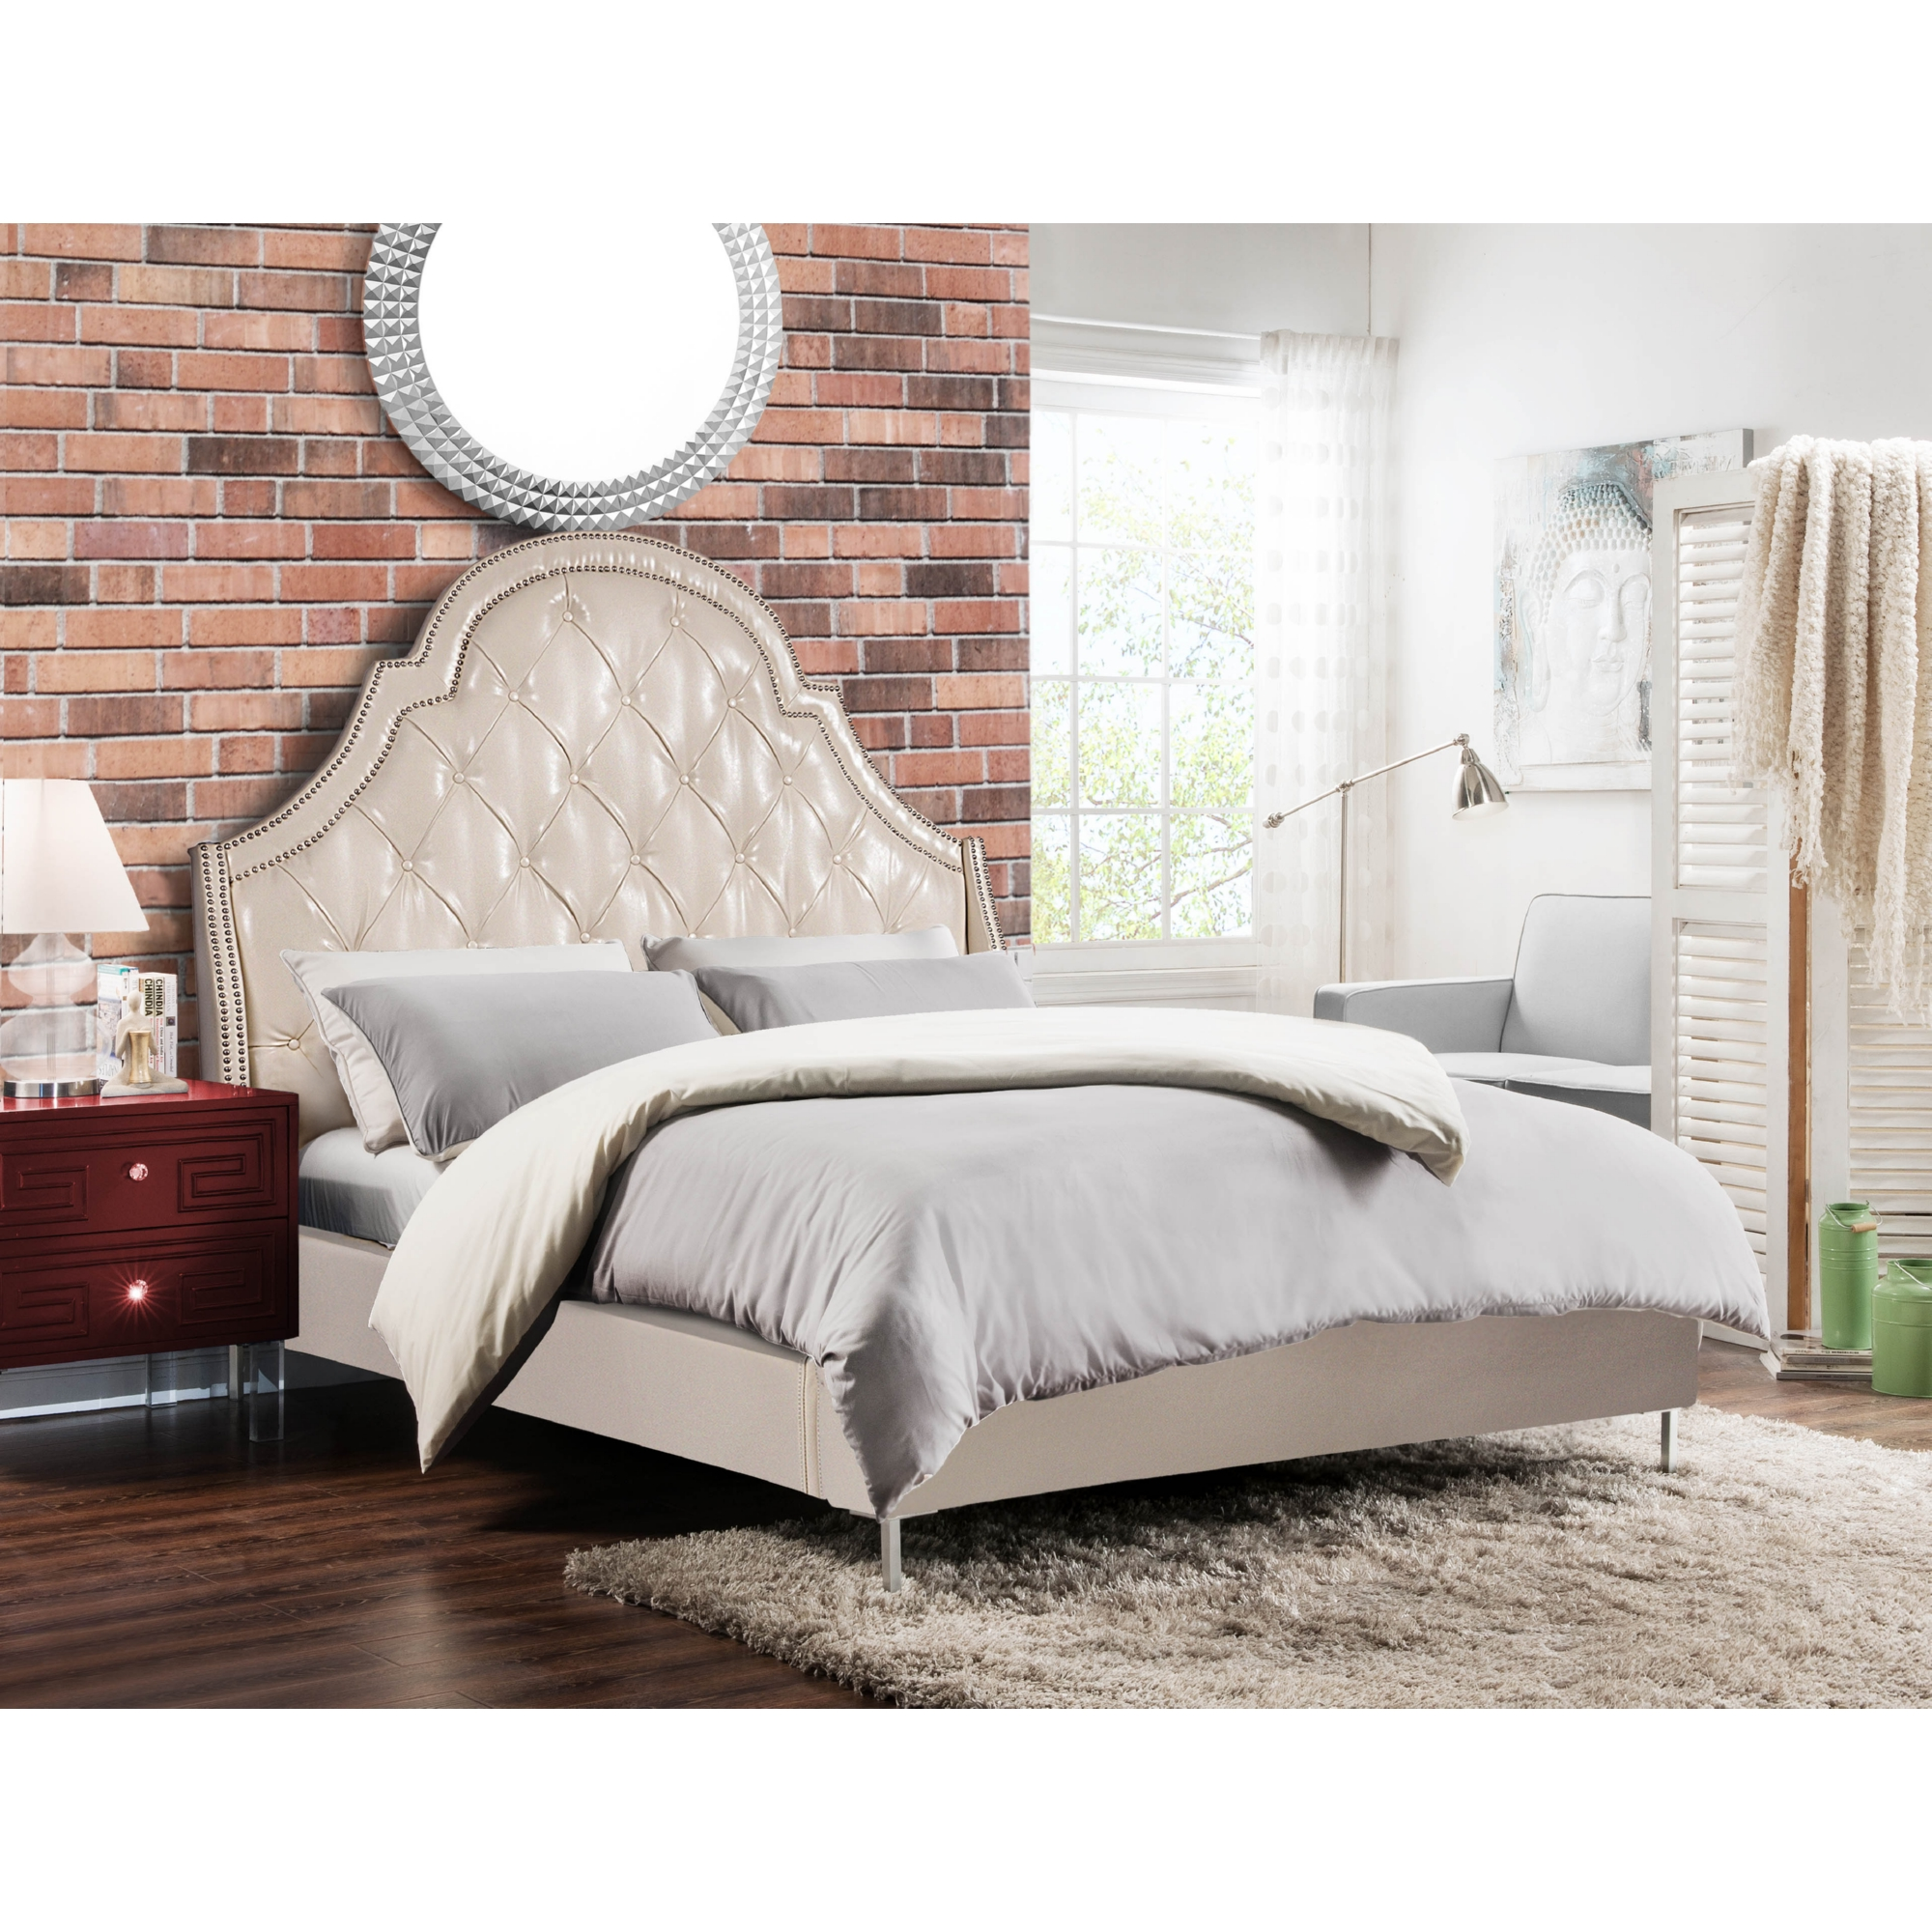 Chic Home Bd16 13cm Q1 Dr Napoleon Arched Queen Bed Tufted Cream